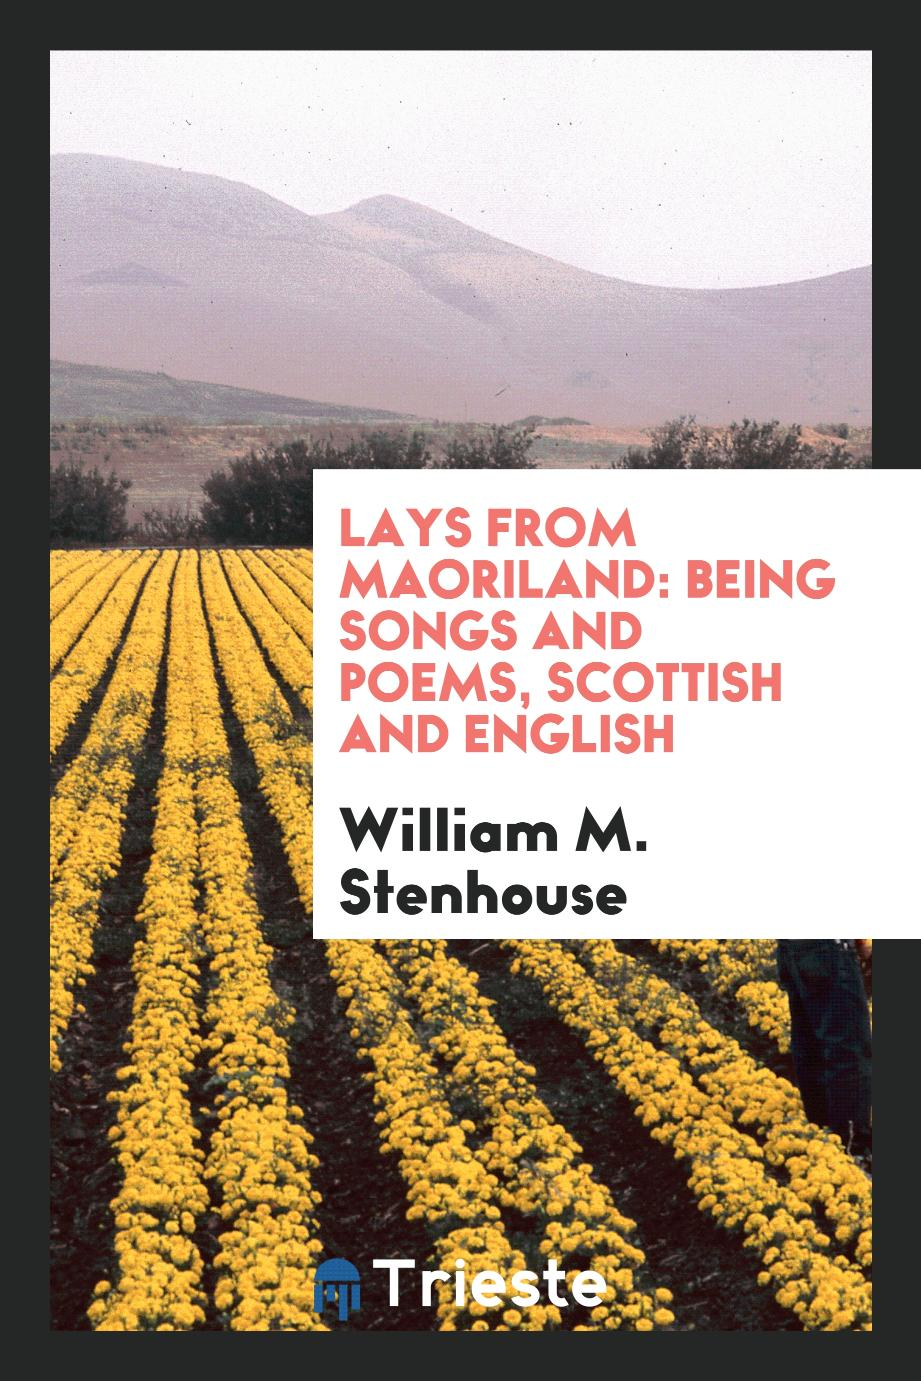 Lays from Maoriland: Being Songs and Poems, Scottish and English